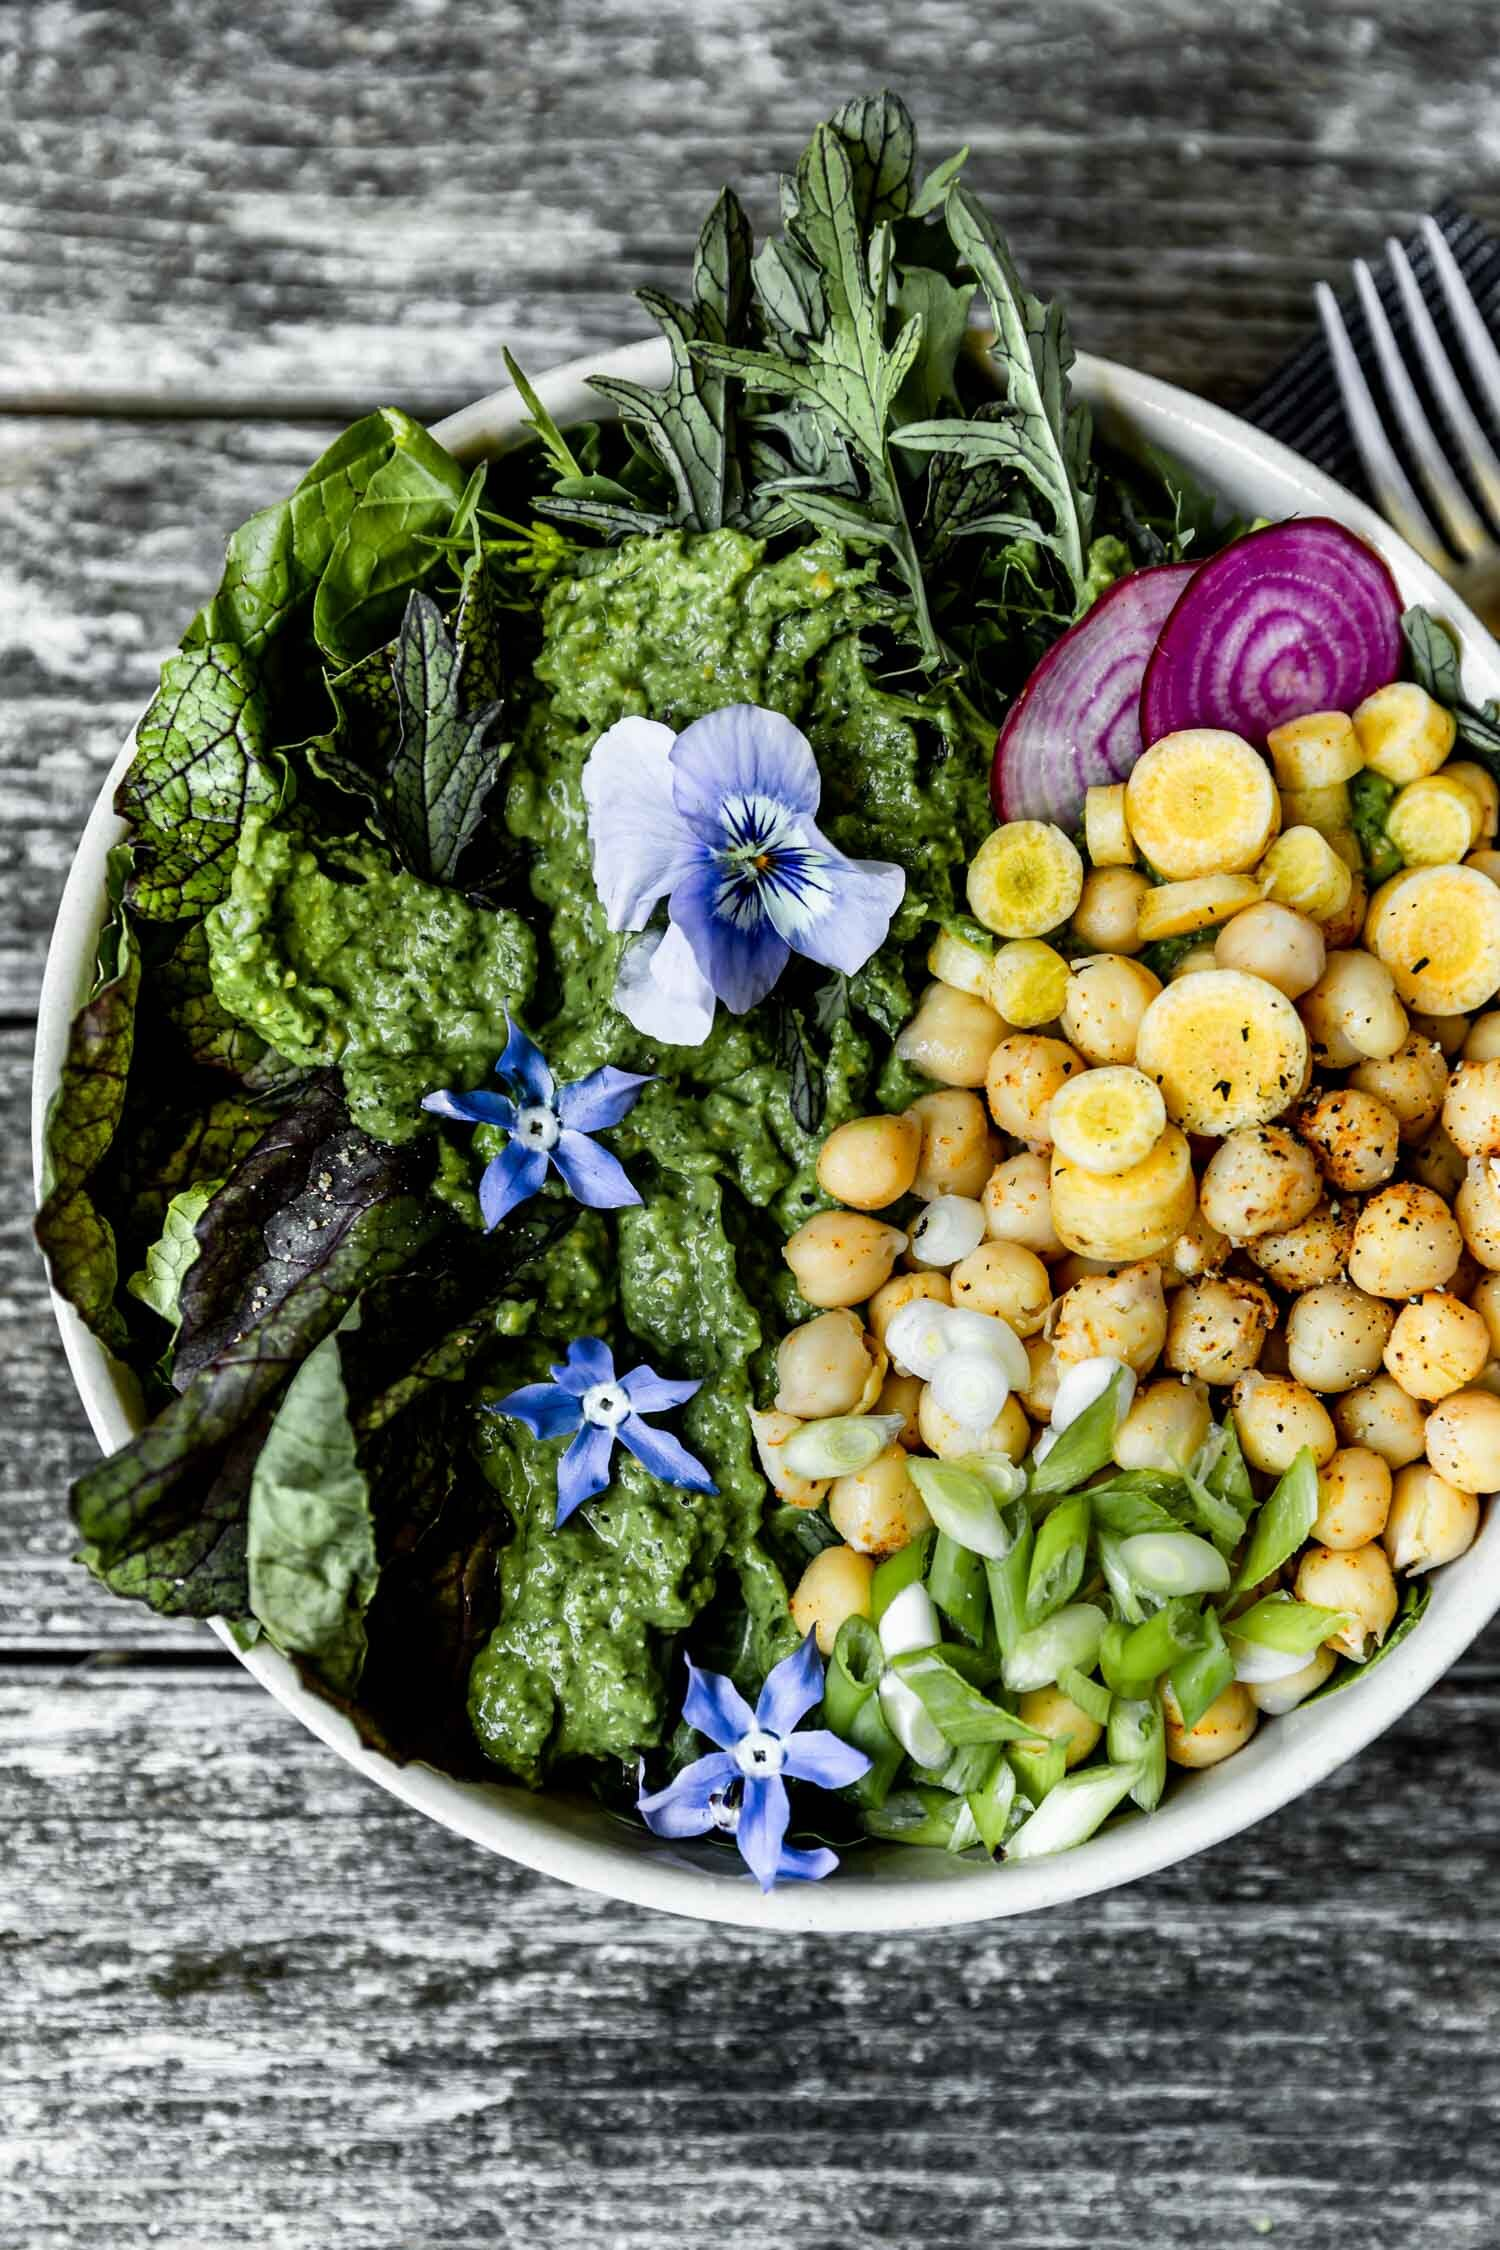 blue-flower-salad.jpg